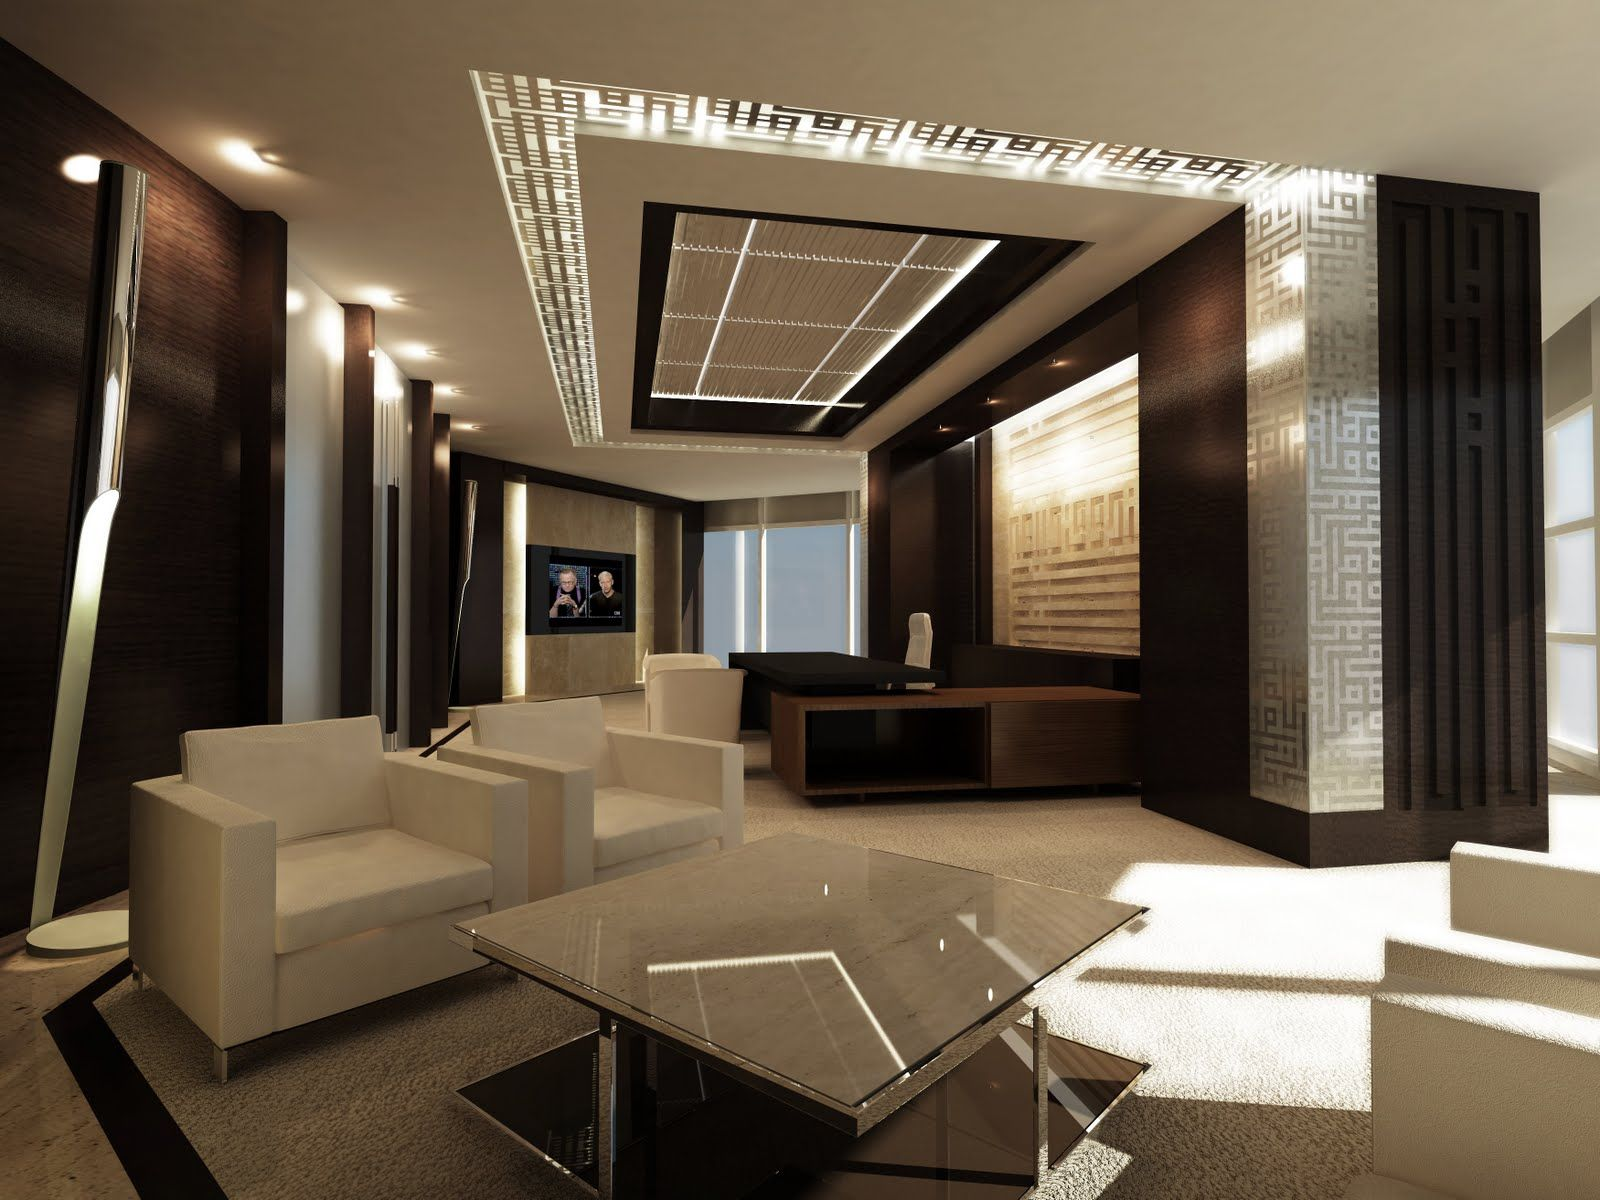 Tawazen Interior Design L L C Khalifa Fund Office CEO office CEO